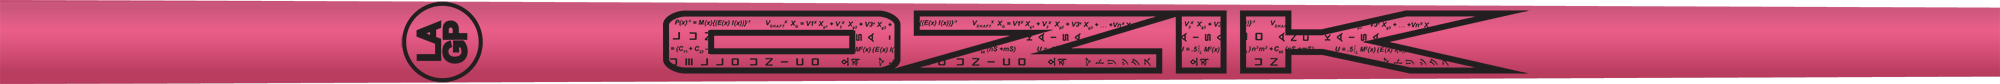 Ozik Red Tie: Neon Pink Black Satin - Wood 50 S